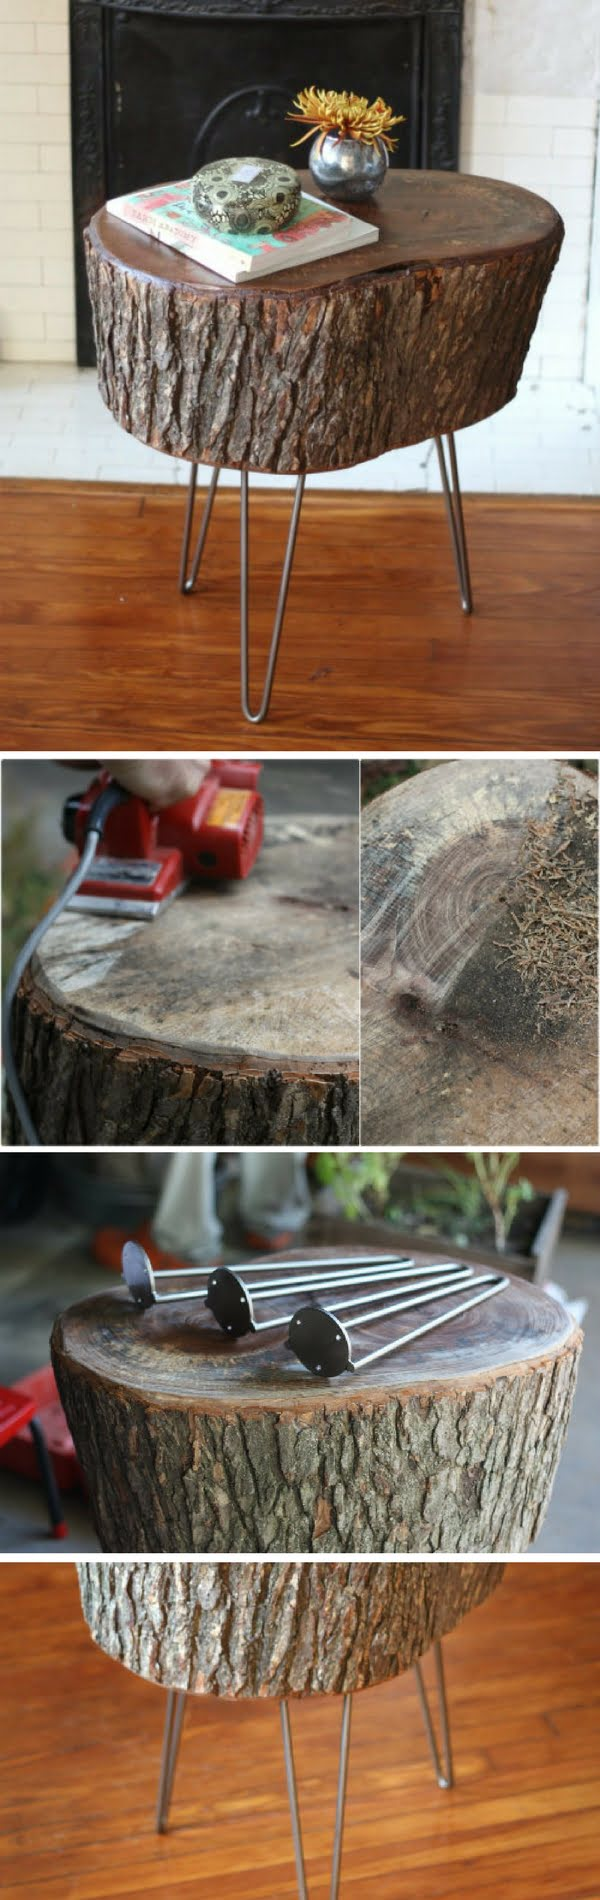 How to make a DIY tree stump table with hairpin legs